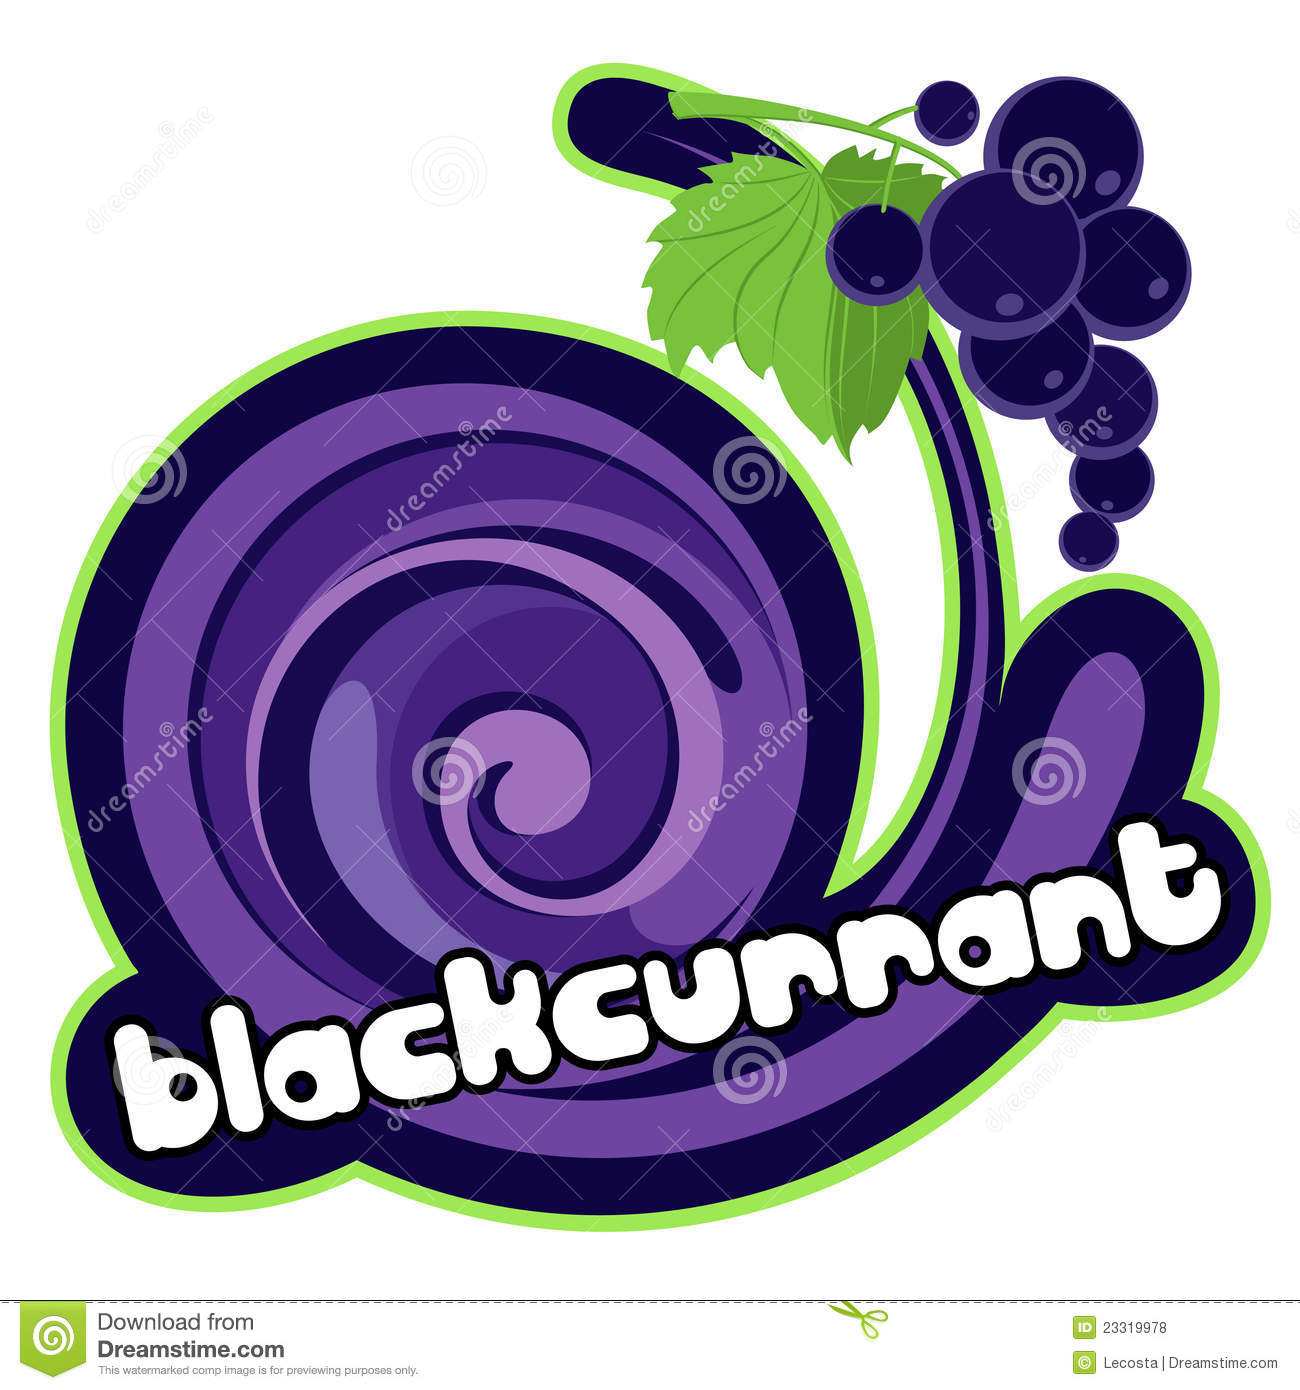 Birthday Cake Clip Art Ice Cream Blackcurrant Royalty Free Stock Photos - Image